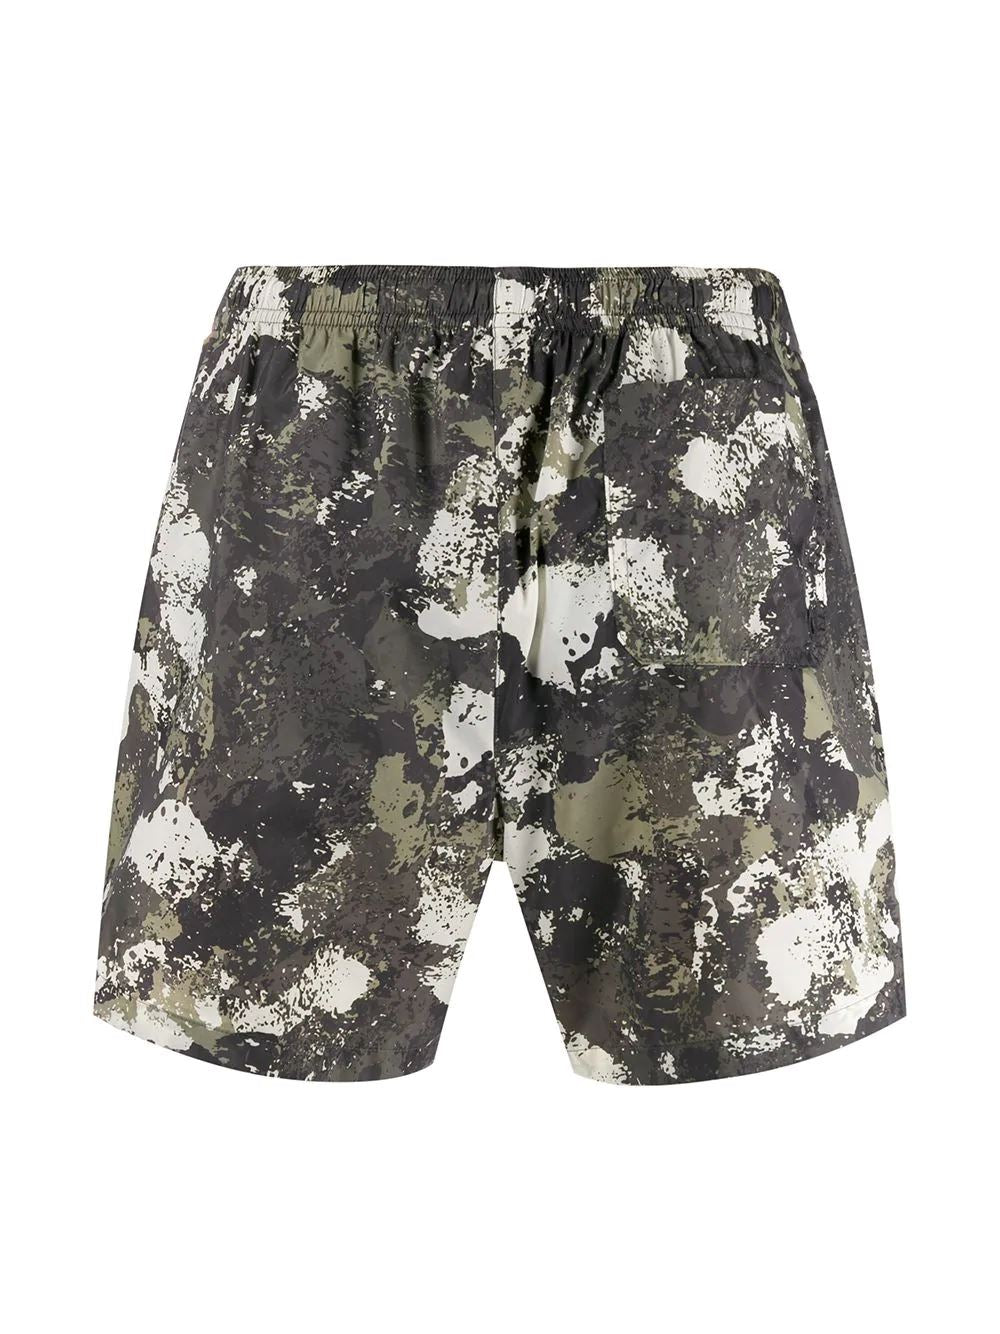 MARCELO BURLON camouflage-print swimming shorts - Maison De Fashion